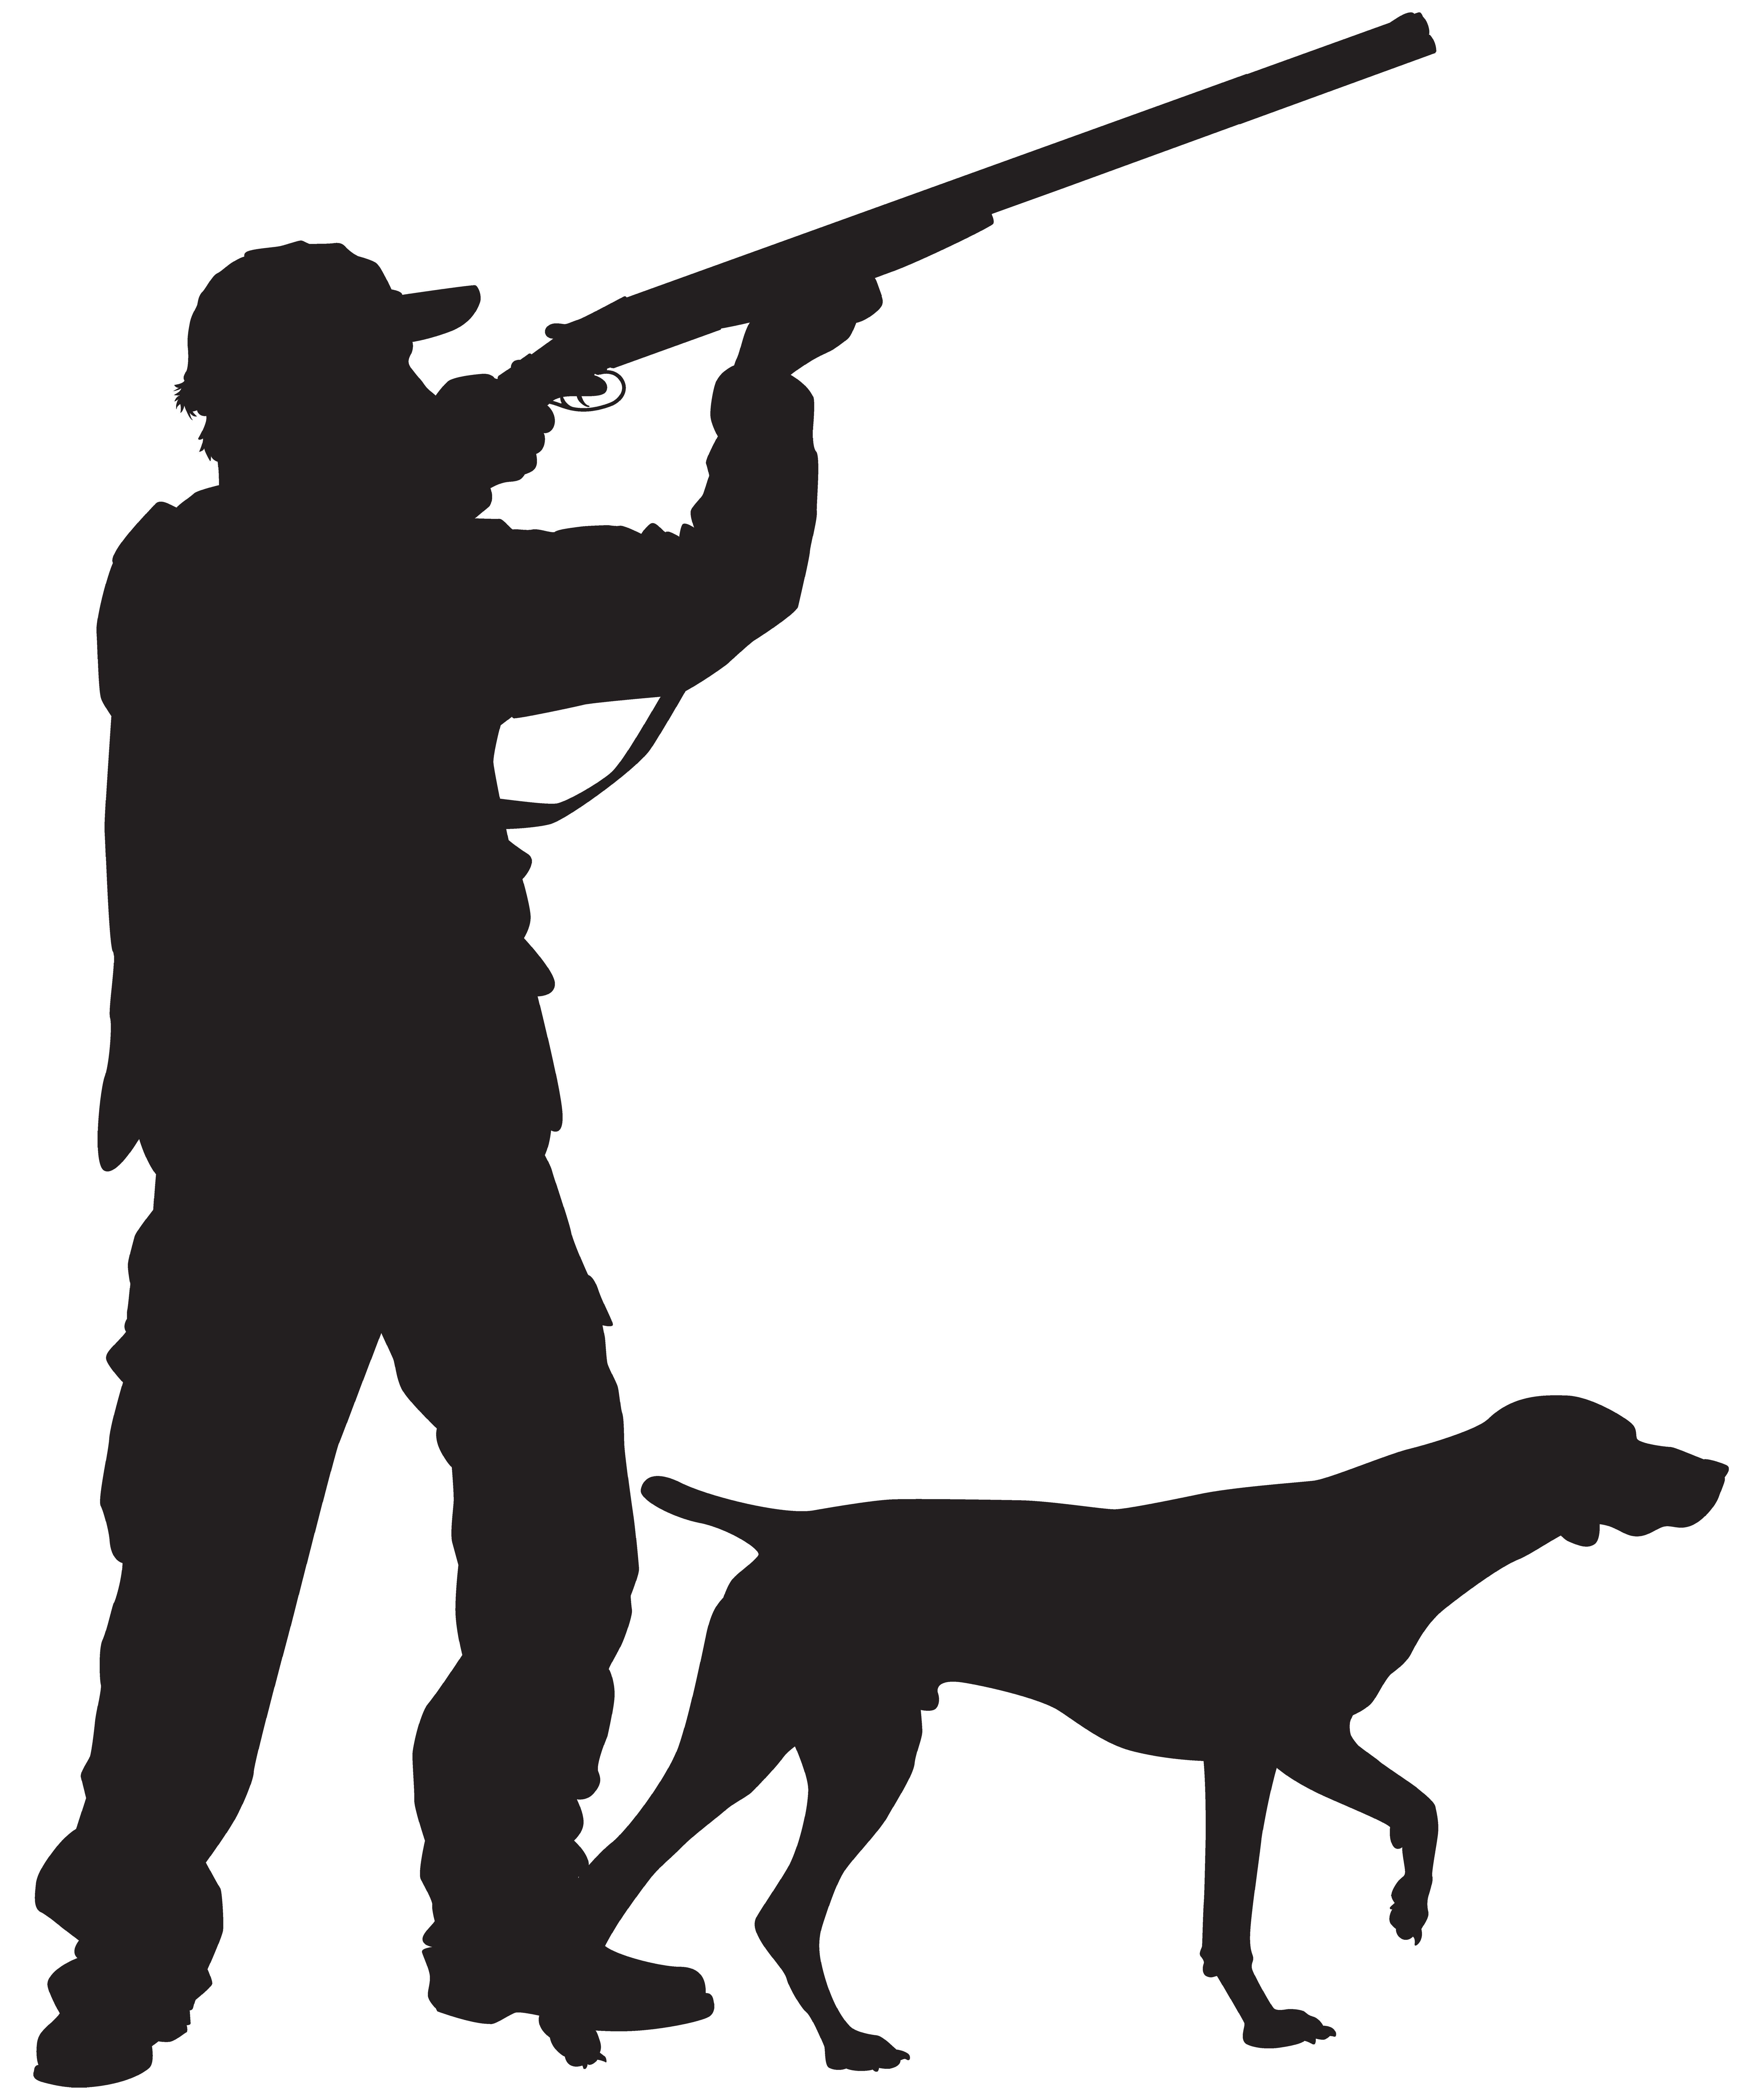 6660x8000 Hunter With Dog Silhouette Png Clip Art Imageu200b Gallery